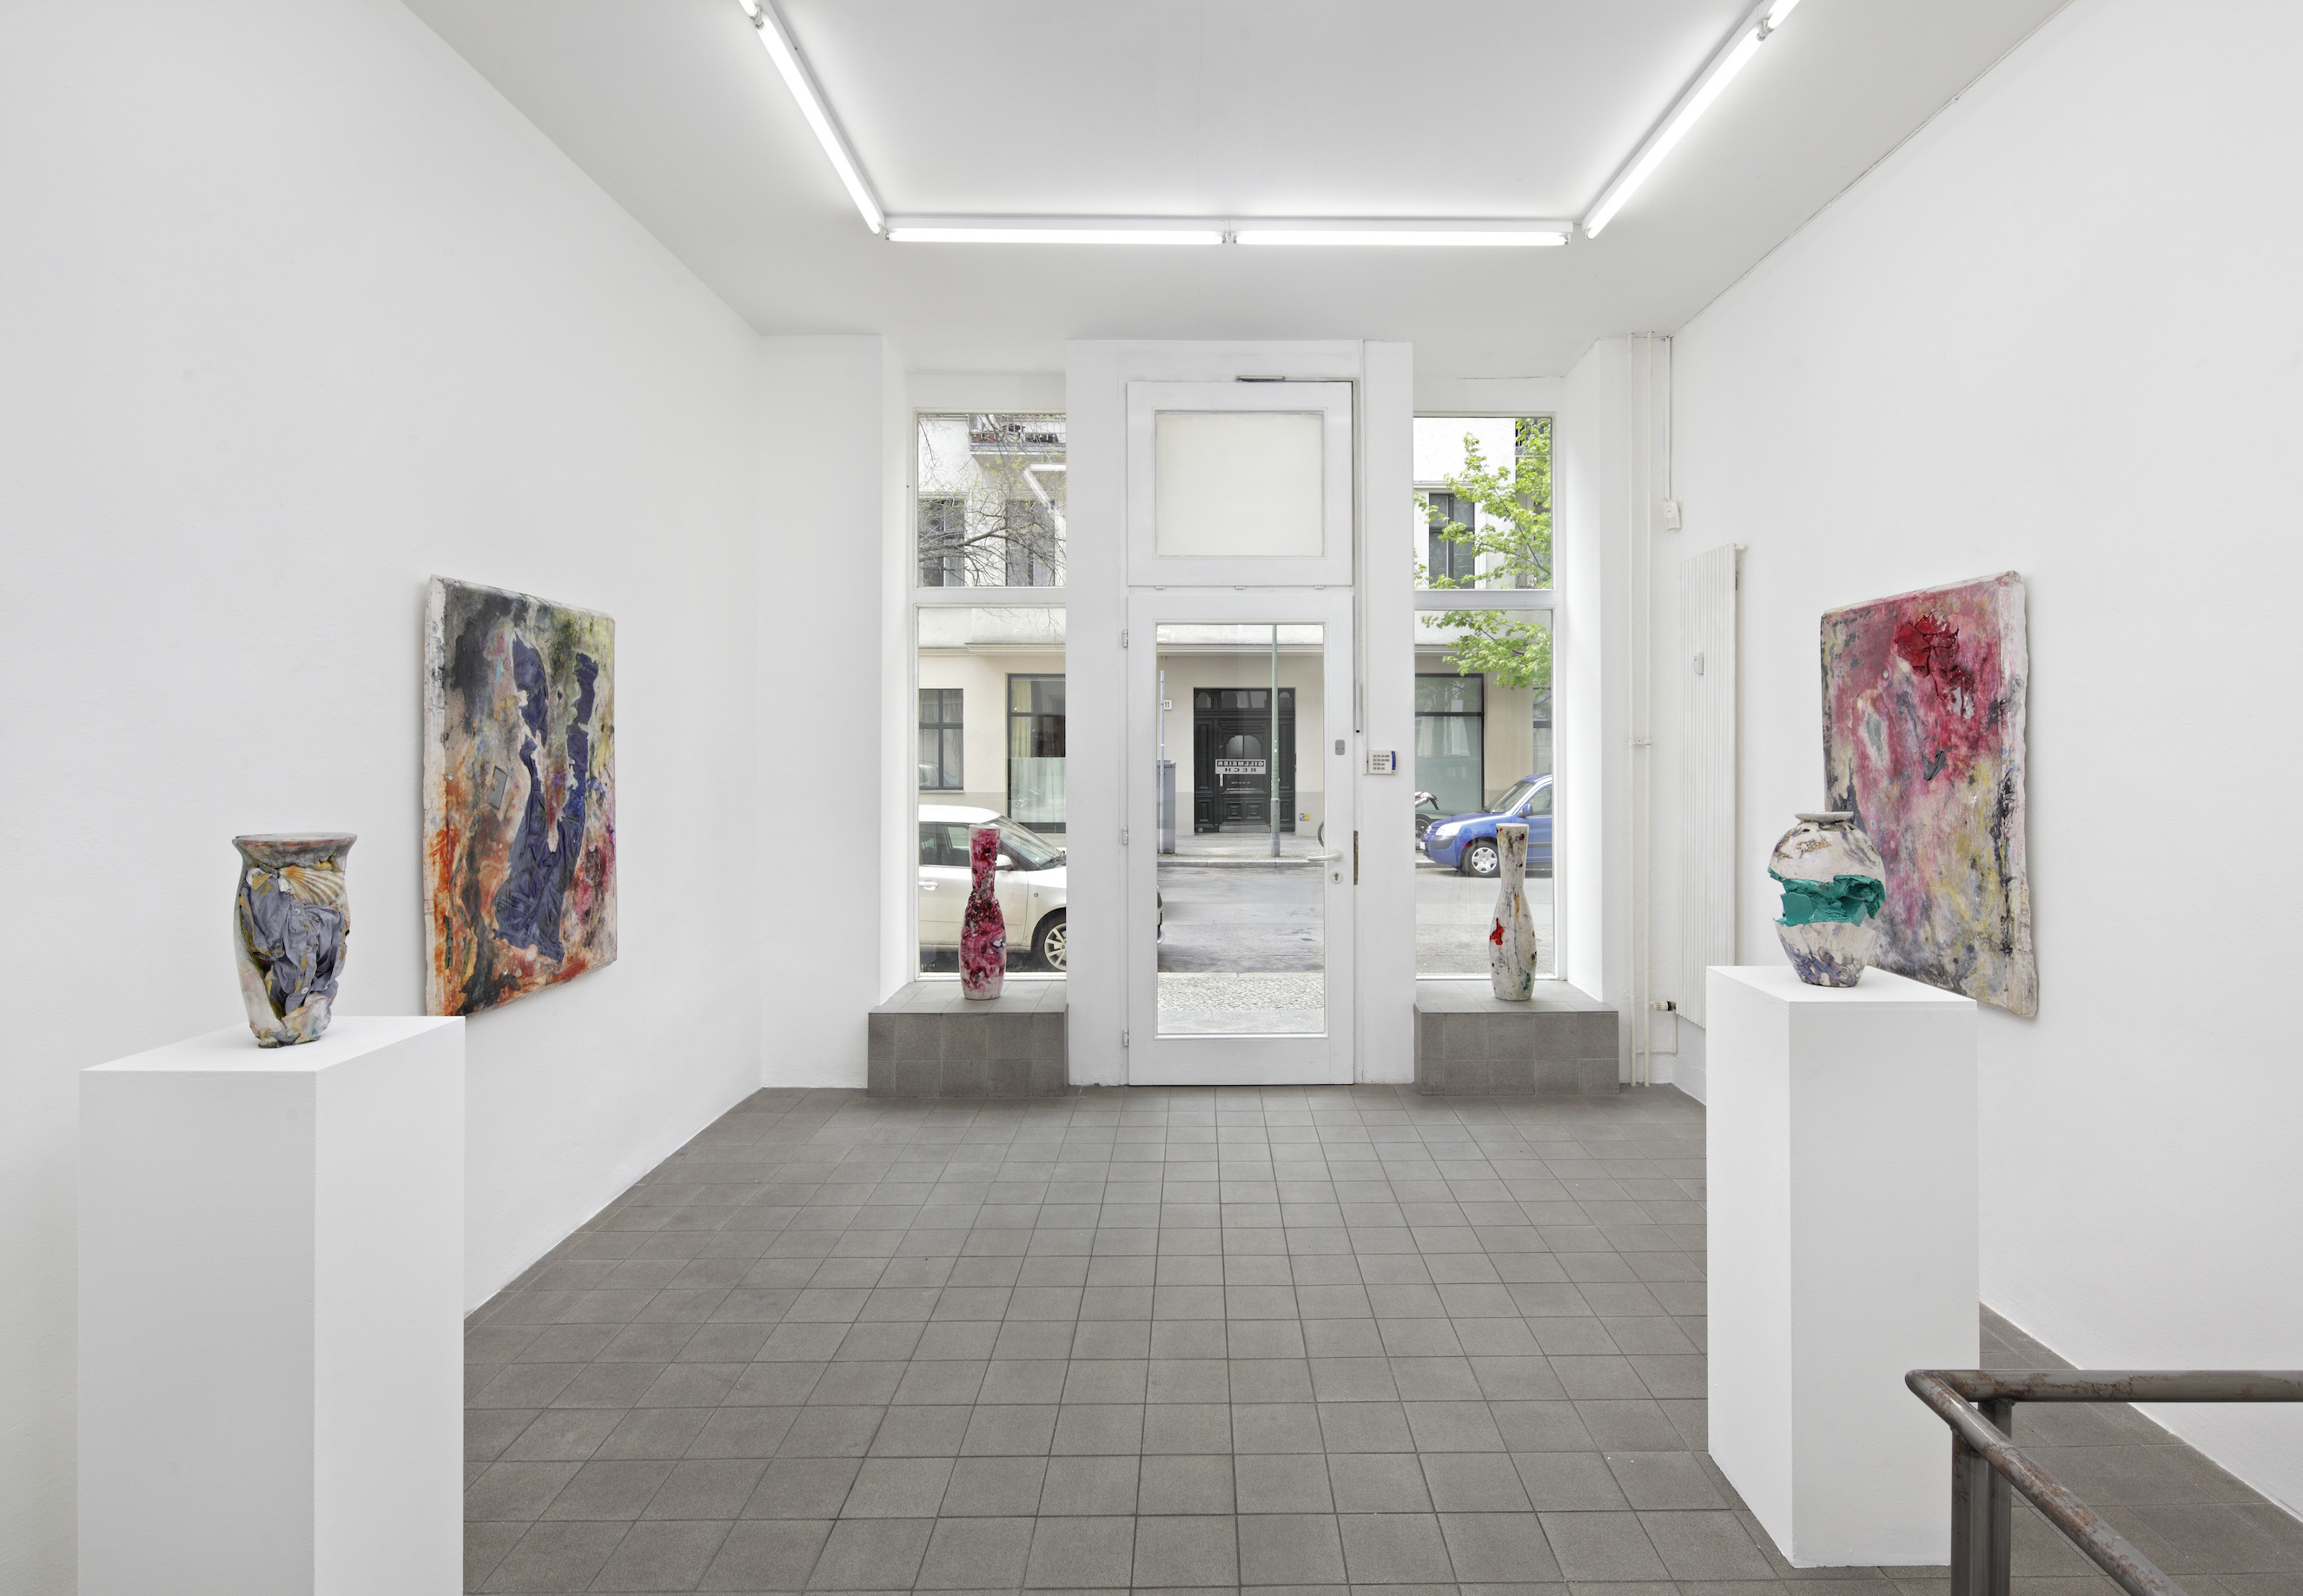 Exhibition view. Gillmeier Rech, Berlin, 2015 / photo © Hans-Georg Gaul